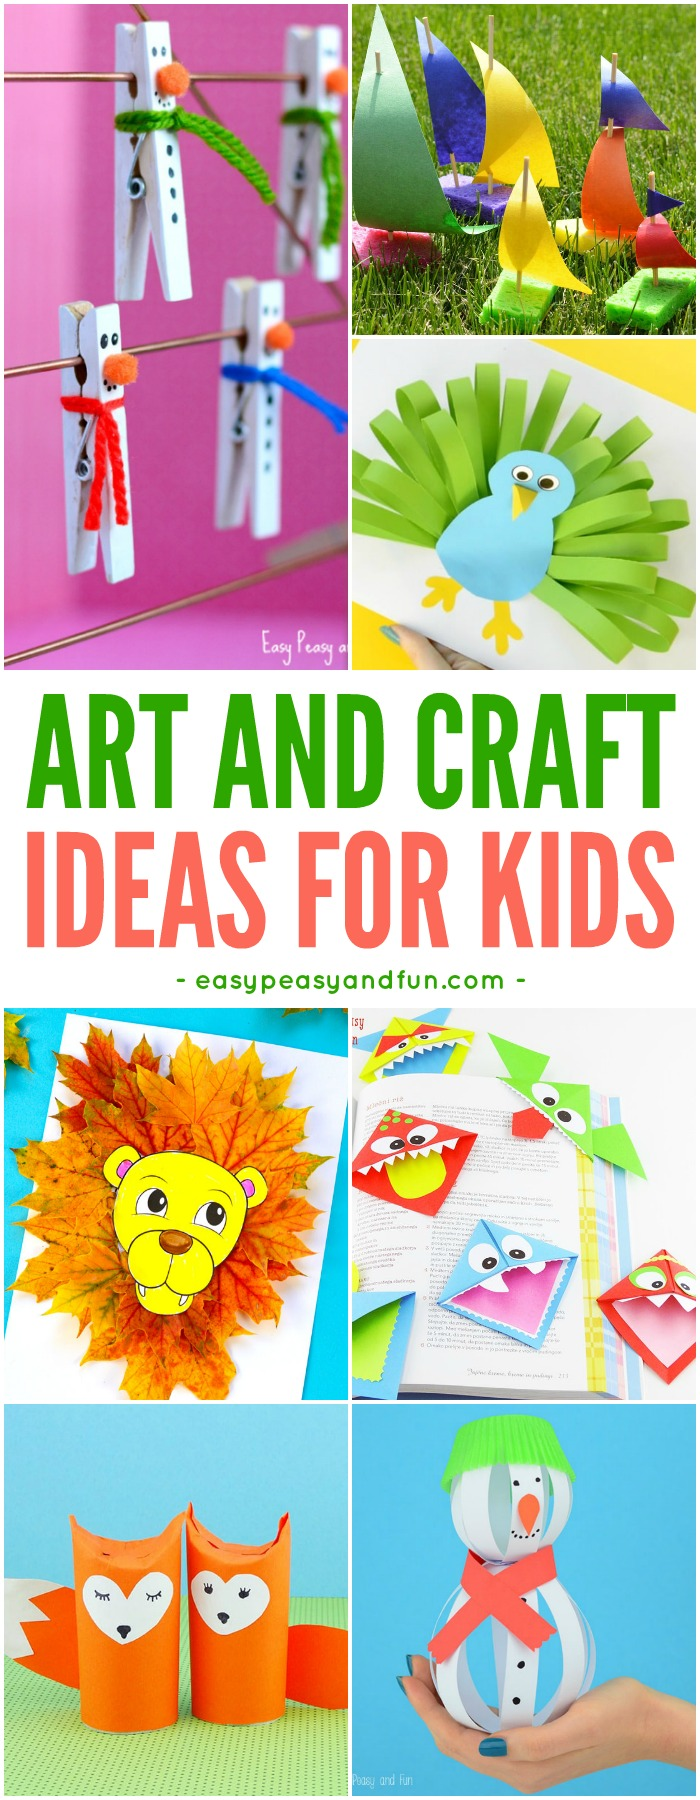 Art Craft Ideas Crafts For Kids Tons Of Art And Craft Ideas For Kids To Make